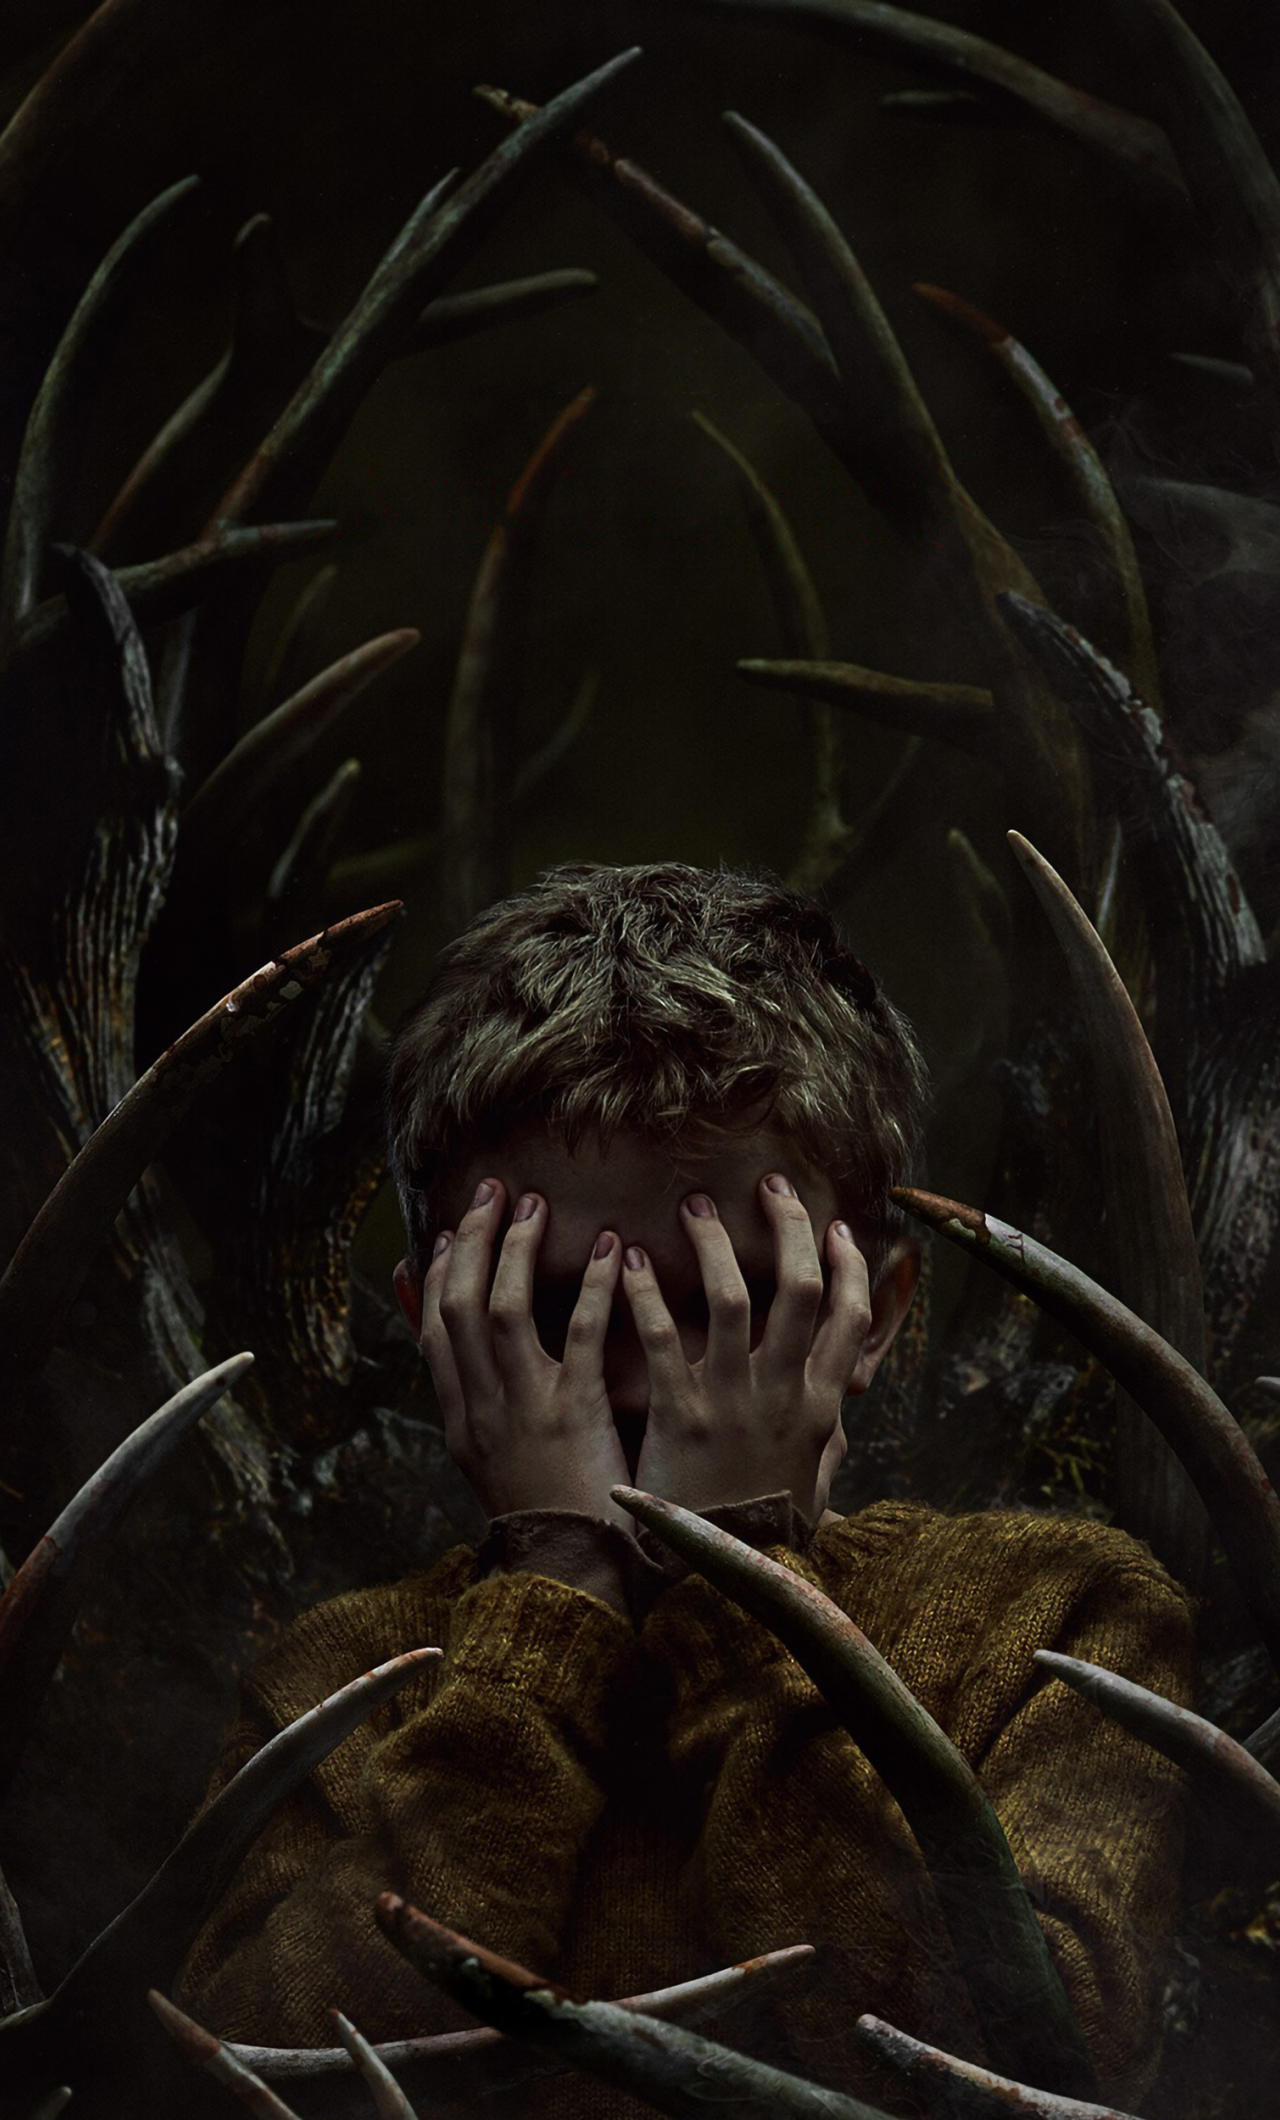 Antlers Movie Poster Wallpaper in 1280x2120 Resolution